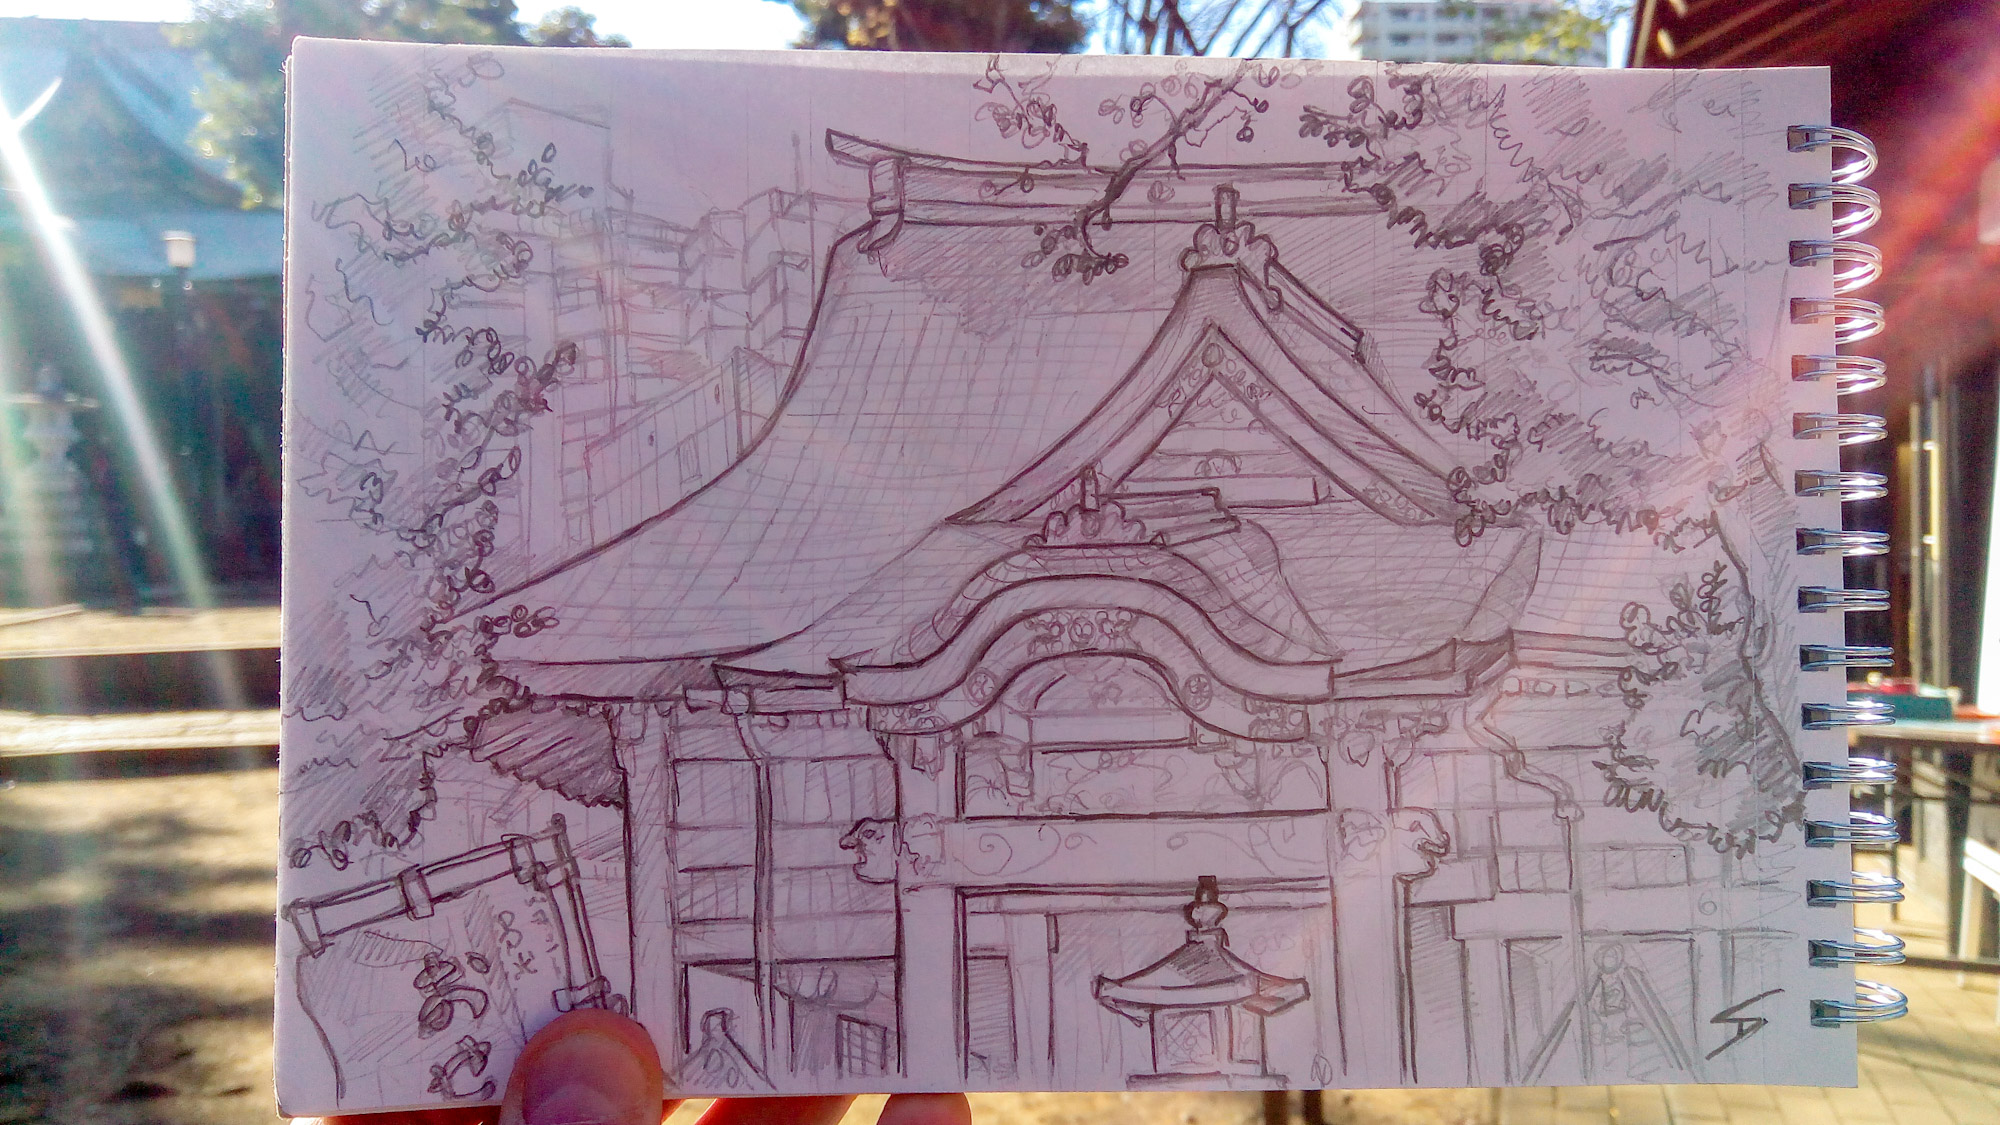 Urban photo art - Toshima City, Tokyo, Japan. 'Zoshigaya Kishimoiji Shrine.' A stunning and serene shrine that I discovered by accident, while walking from Ikebukuro to Shinjuku. Sometimes, to find your way, you first need to get lost. sketchbookexplorer.com @davidasutton @sketchbookexplorer Facebook.com/davidanthonysutton #japan #toshimacity #zoshigayakishimoijitemple #travel #travelblog #photography #art #sketching #cheeryblossom #cherryblossomseason